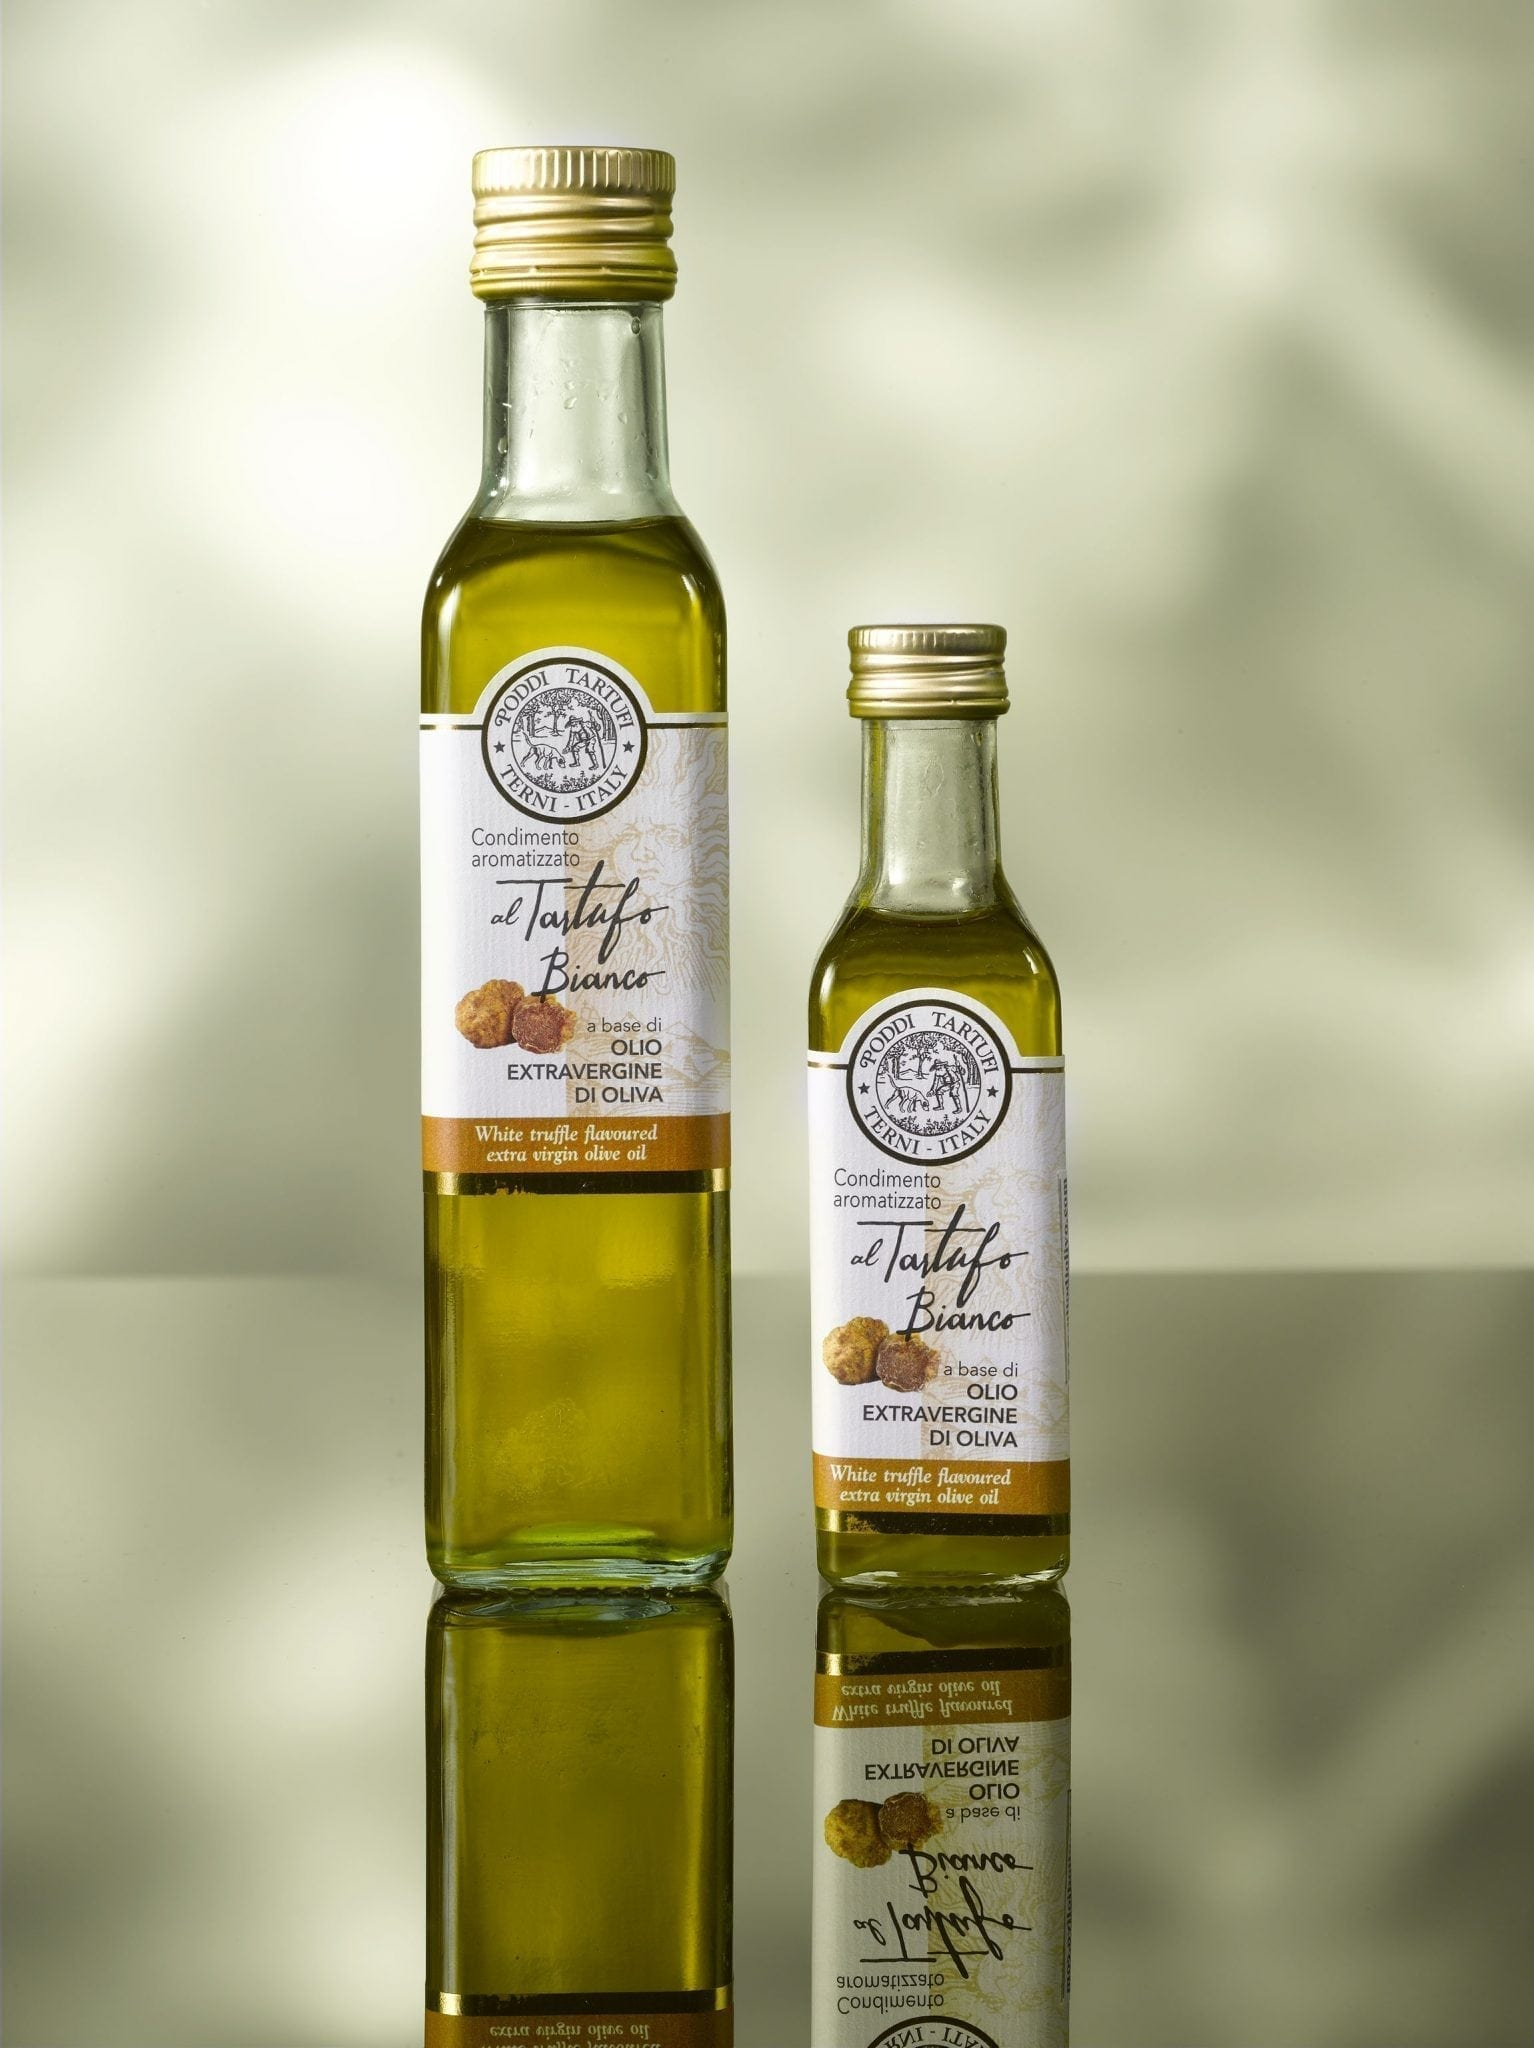 White truffle olive oil, Poddi Umbrie, 100ml